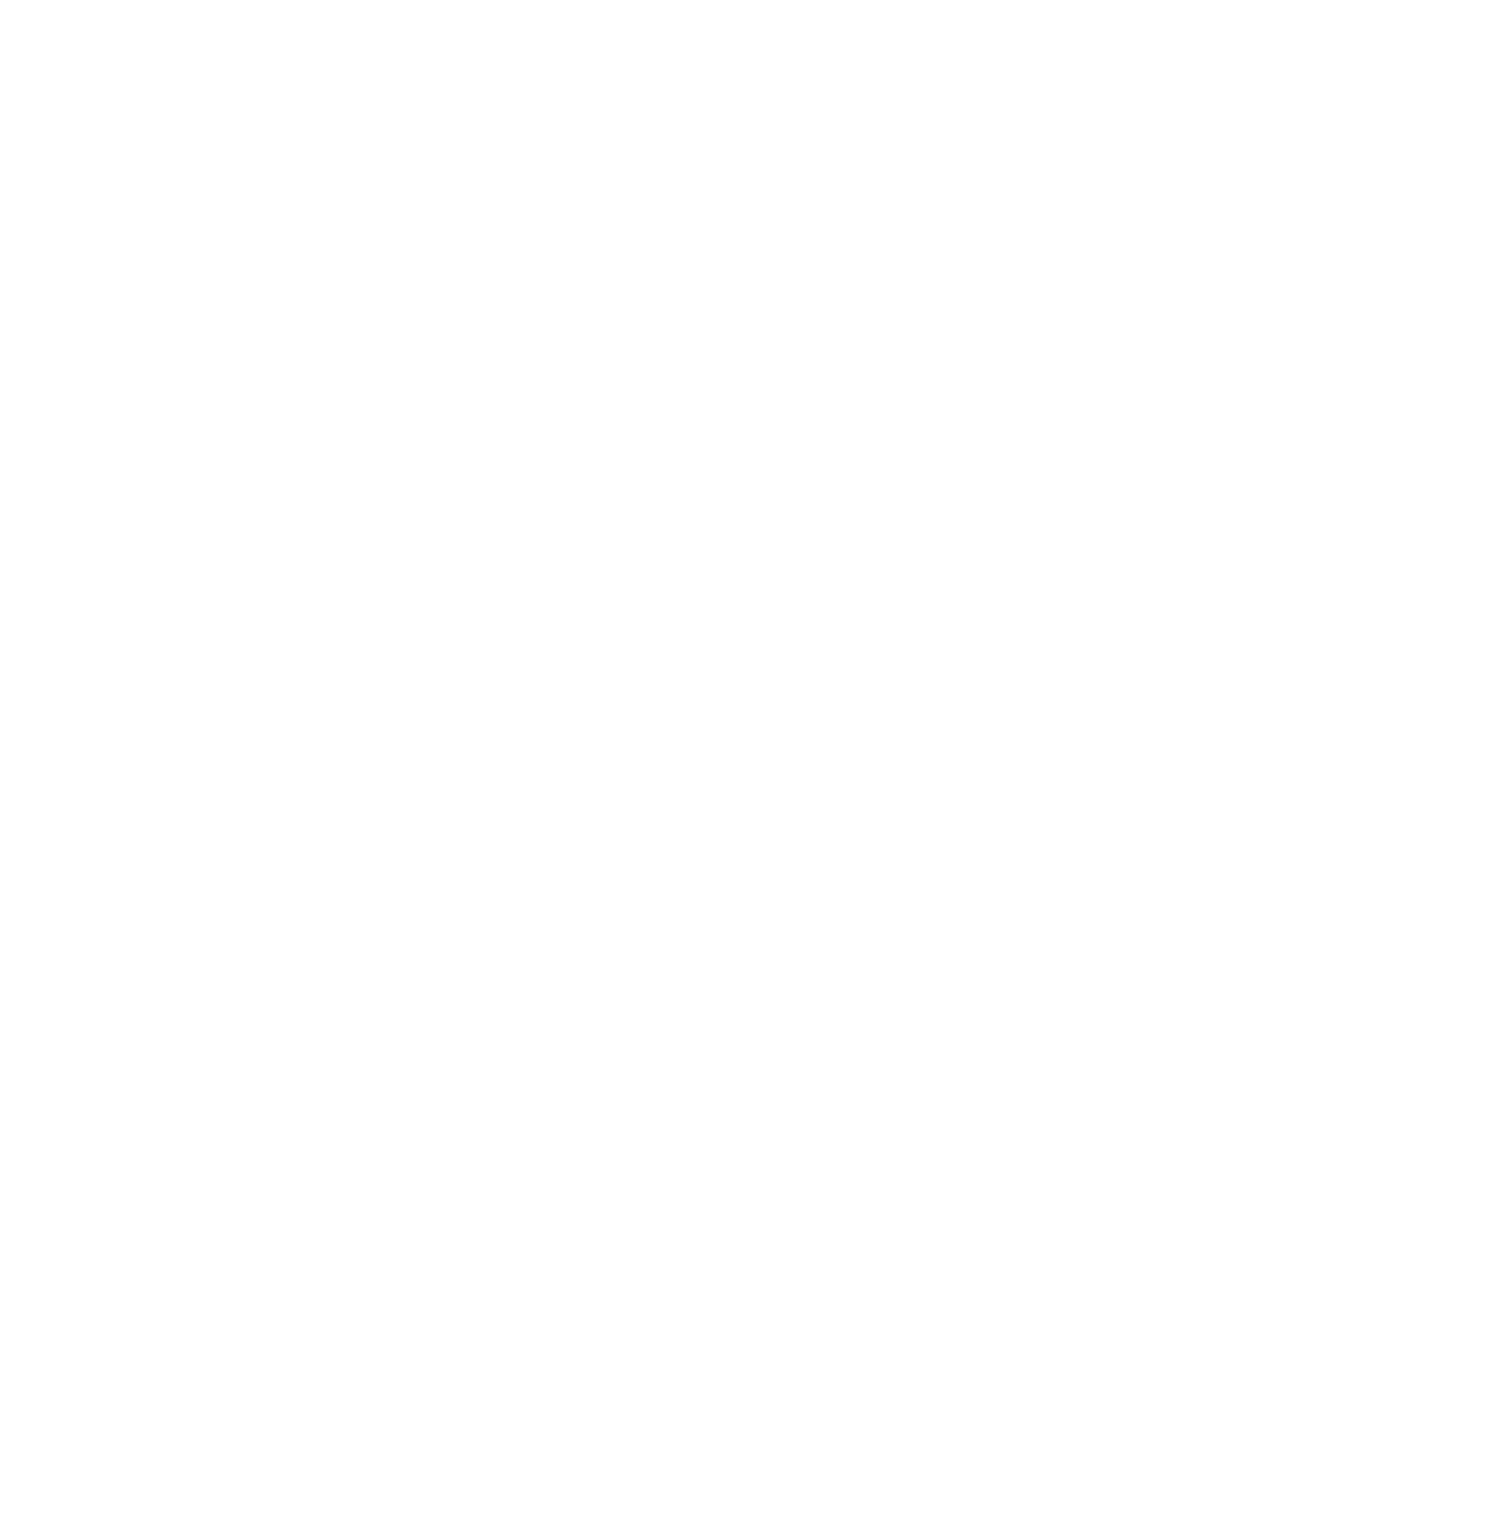 Avon Hill Lodge